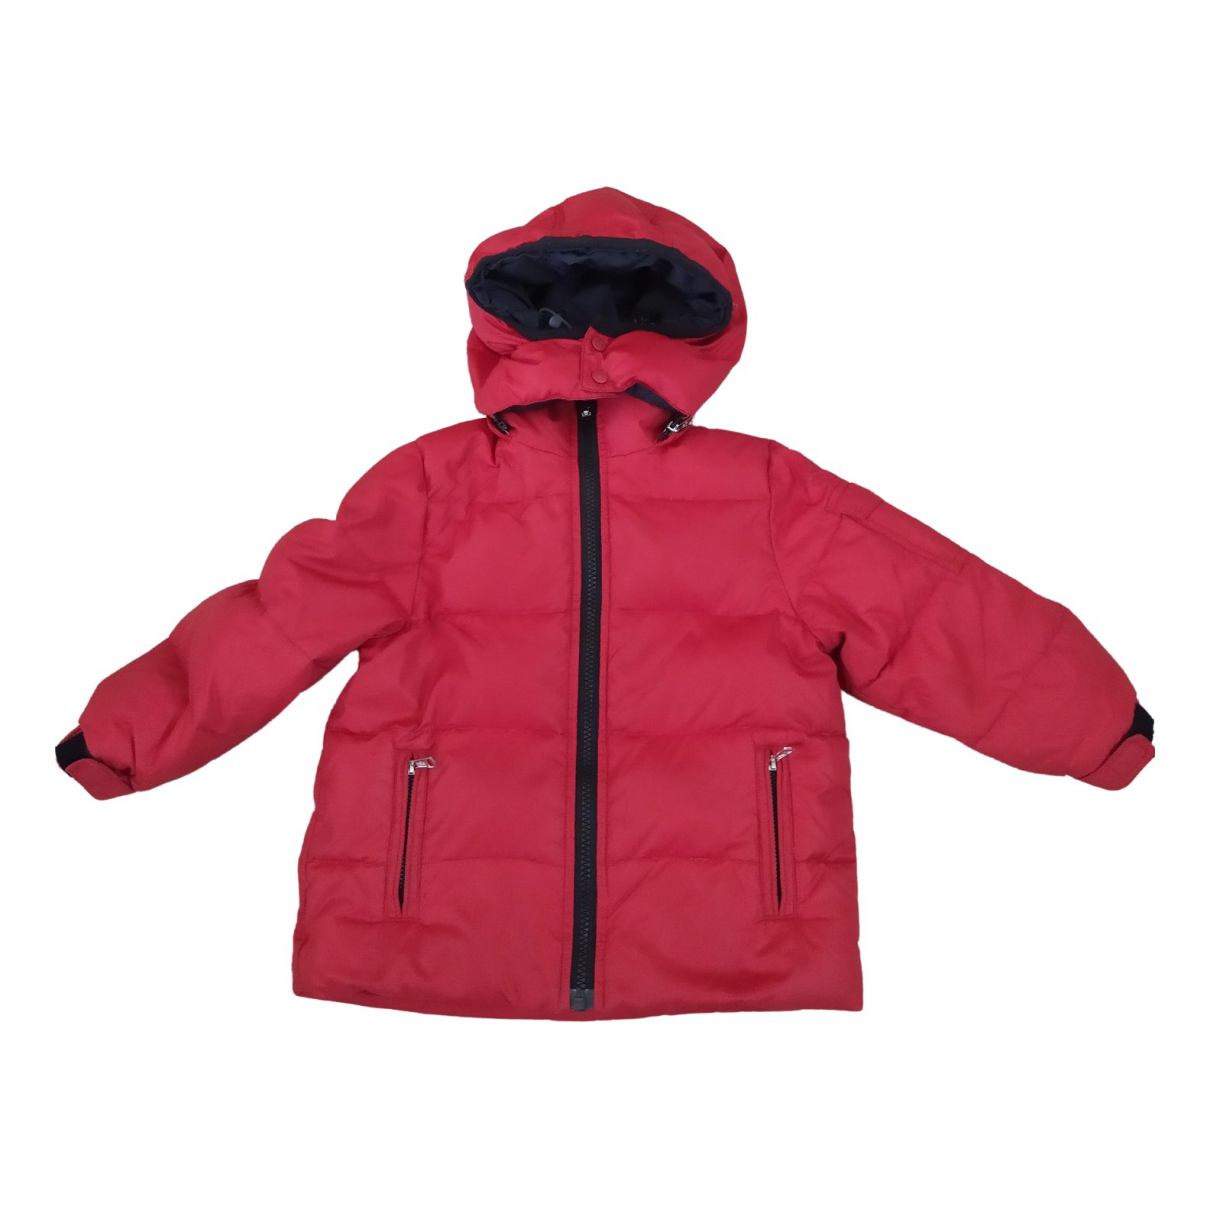 Moncler Hood Red jacket & coat for Kids 2 years - up to 86cm FR